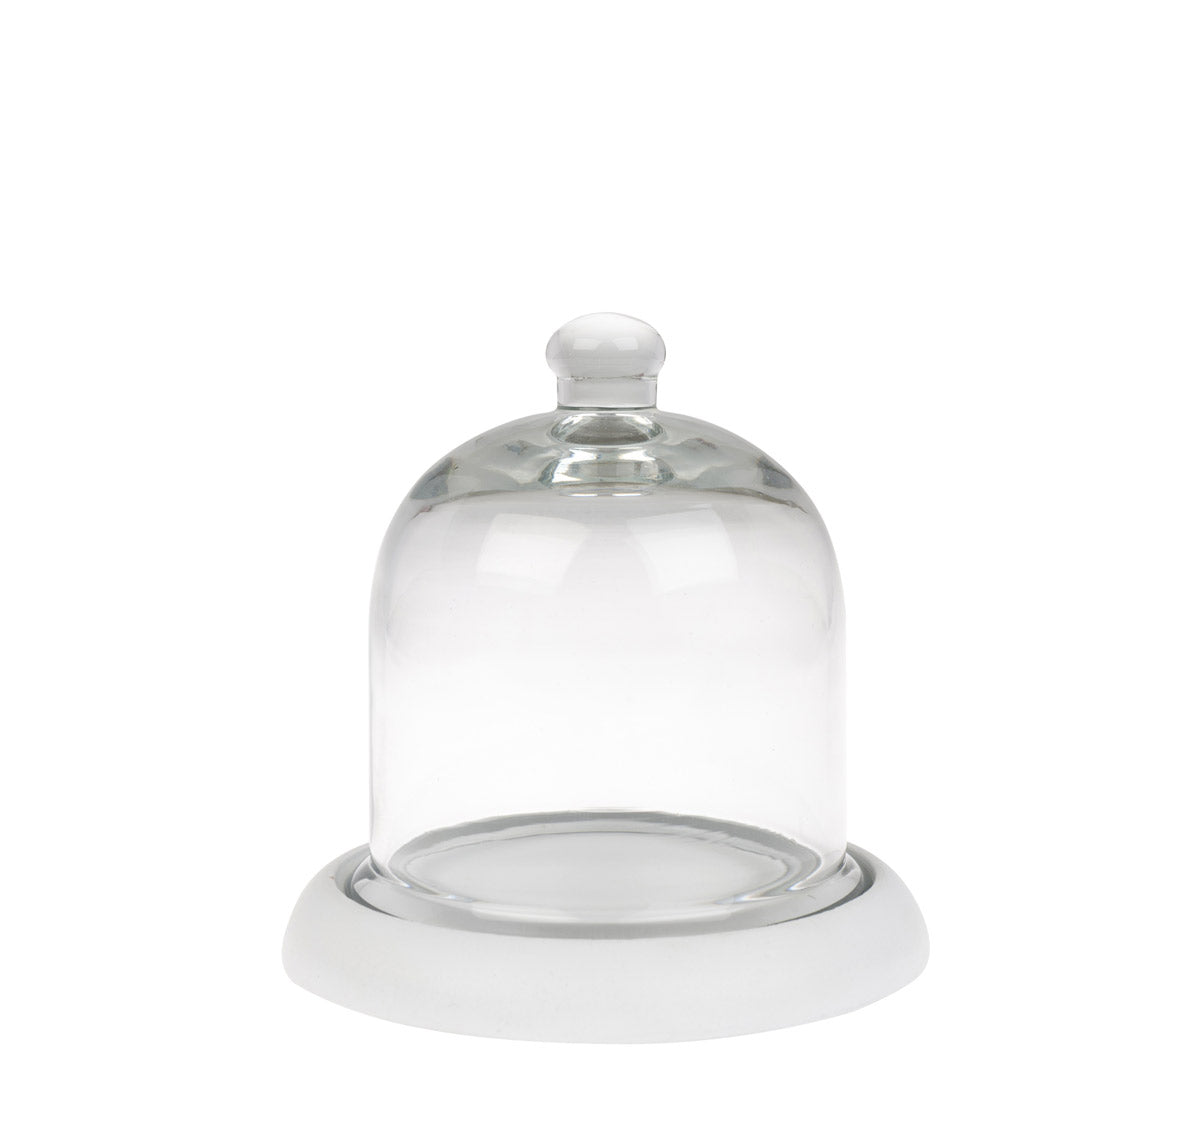 Mini Glass Cloche With Wooden Base